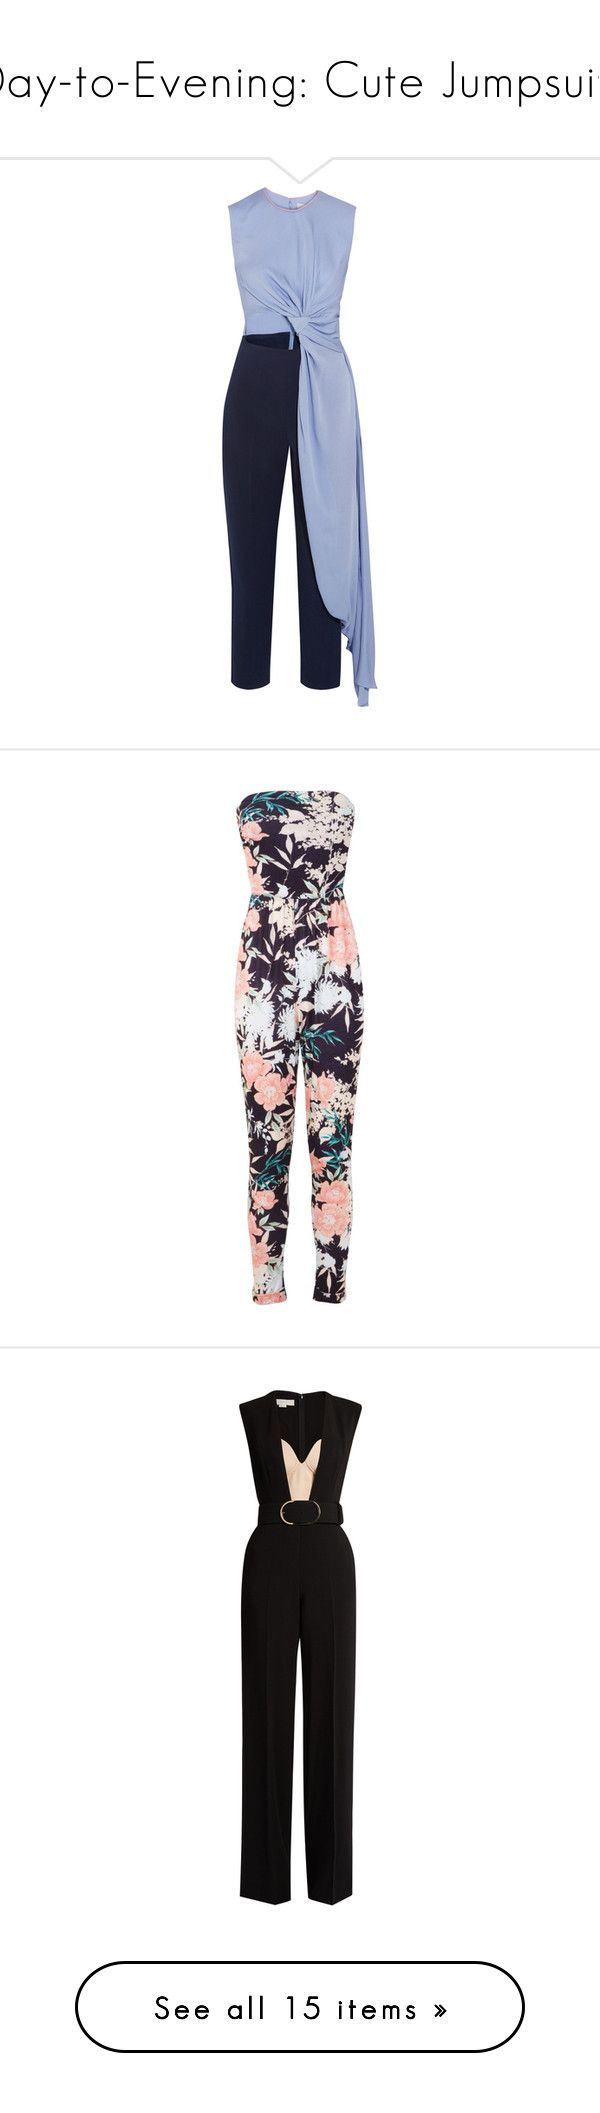 """""""Day-to-Evening: Cute Jumpsuits"""" by polyvore-editorial ❤ liked on Polyvore featuring jumpsuits, jumpsuit, dresses, rompers, jumper, navy, playsuit jumpsuit, blue jumpsuit, cutout romper and tailored jumpsuit"""